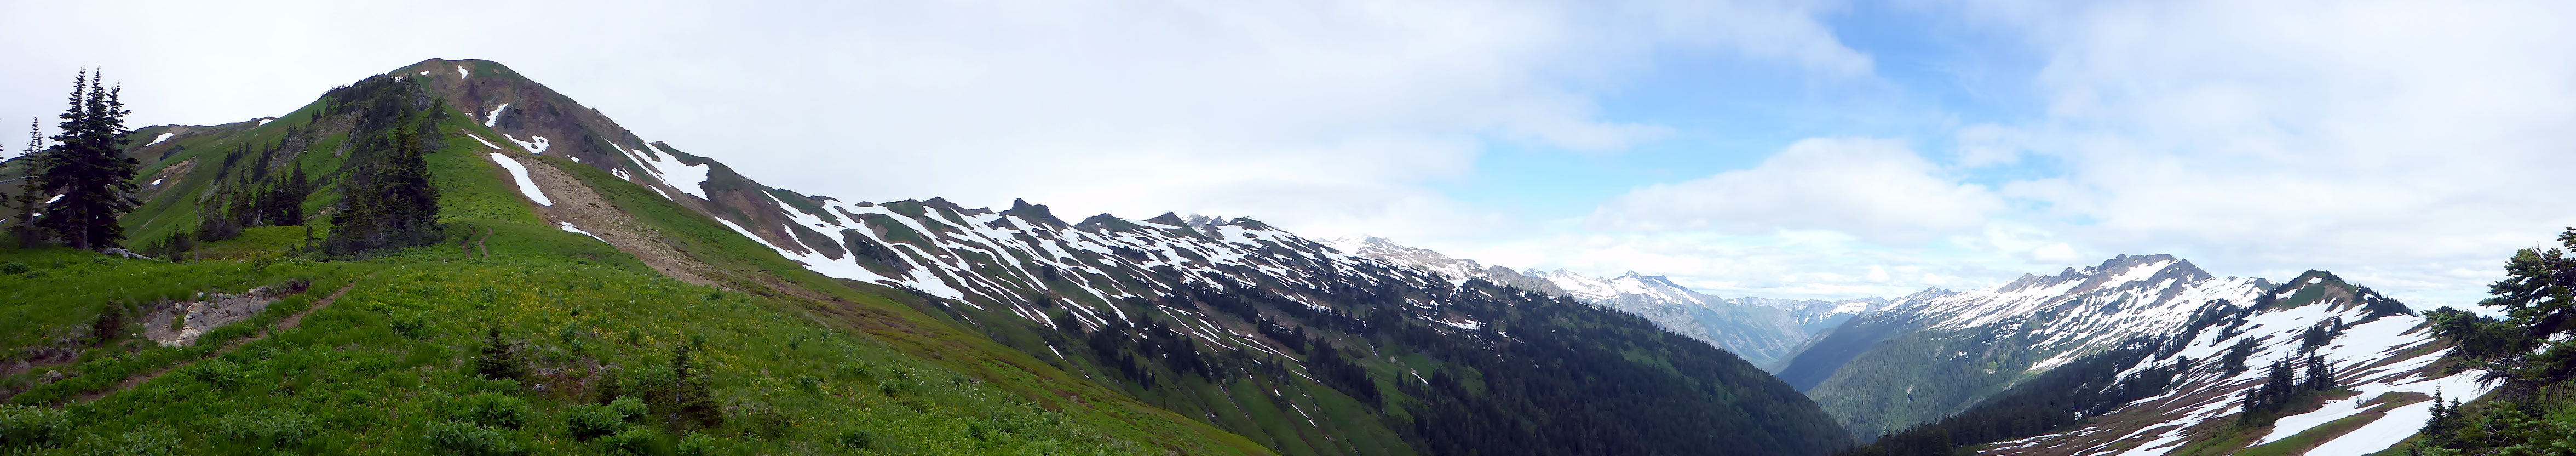 Pano toward Glacier Peak from White Pass